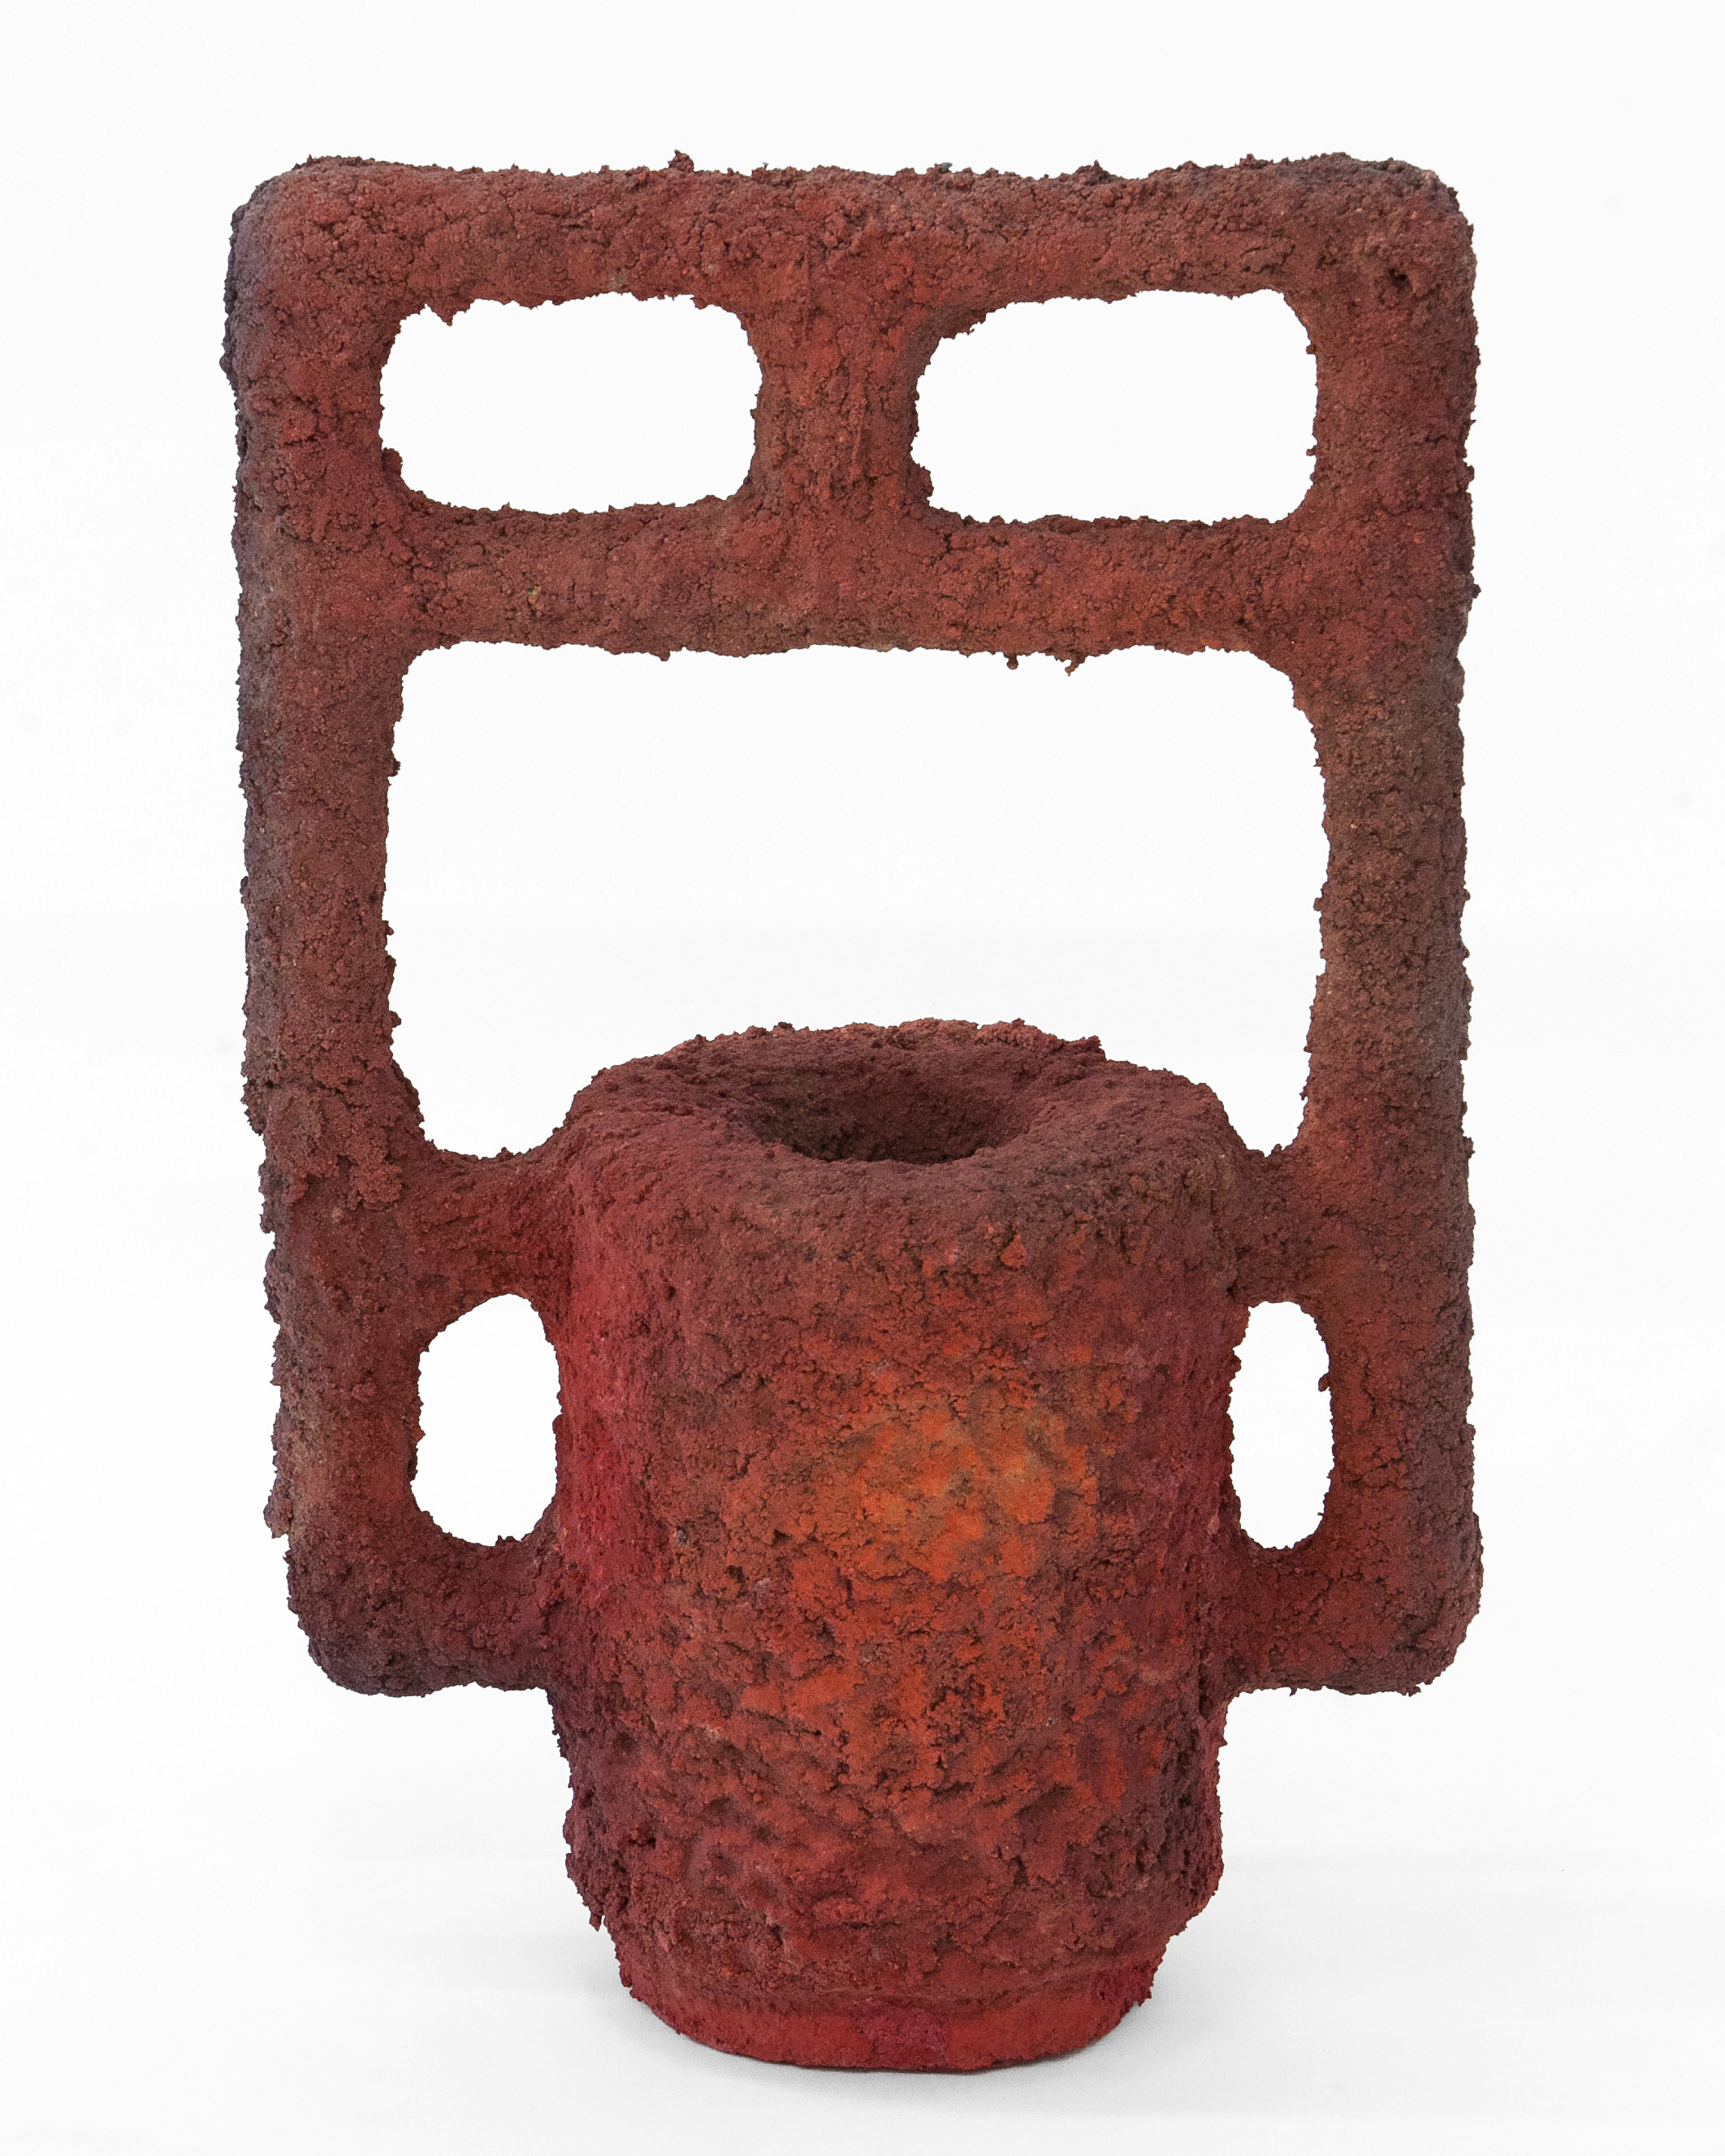 "Kyle Lypka & Tyler Cross  ""Heat Closet""  Ceramic, Glaze, Stain. 36 x 20 x 11 Inches. 2019."